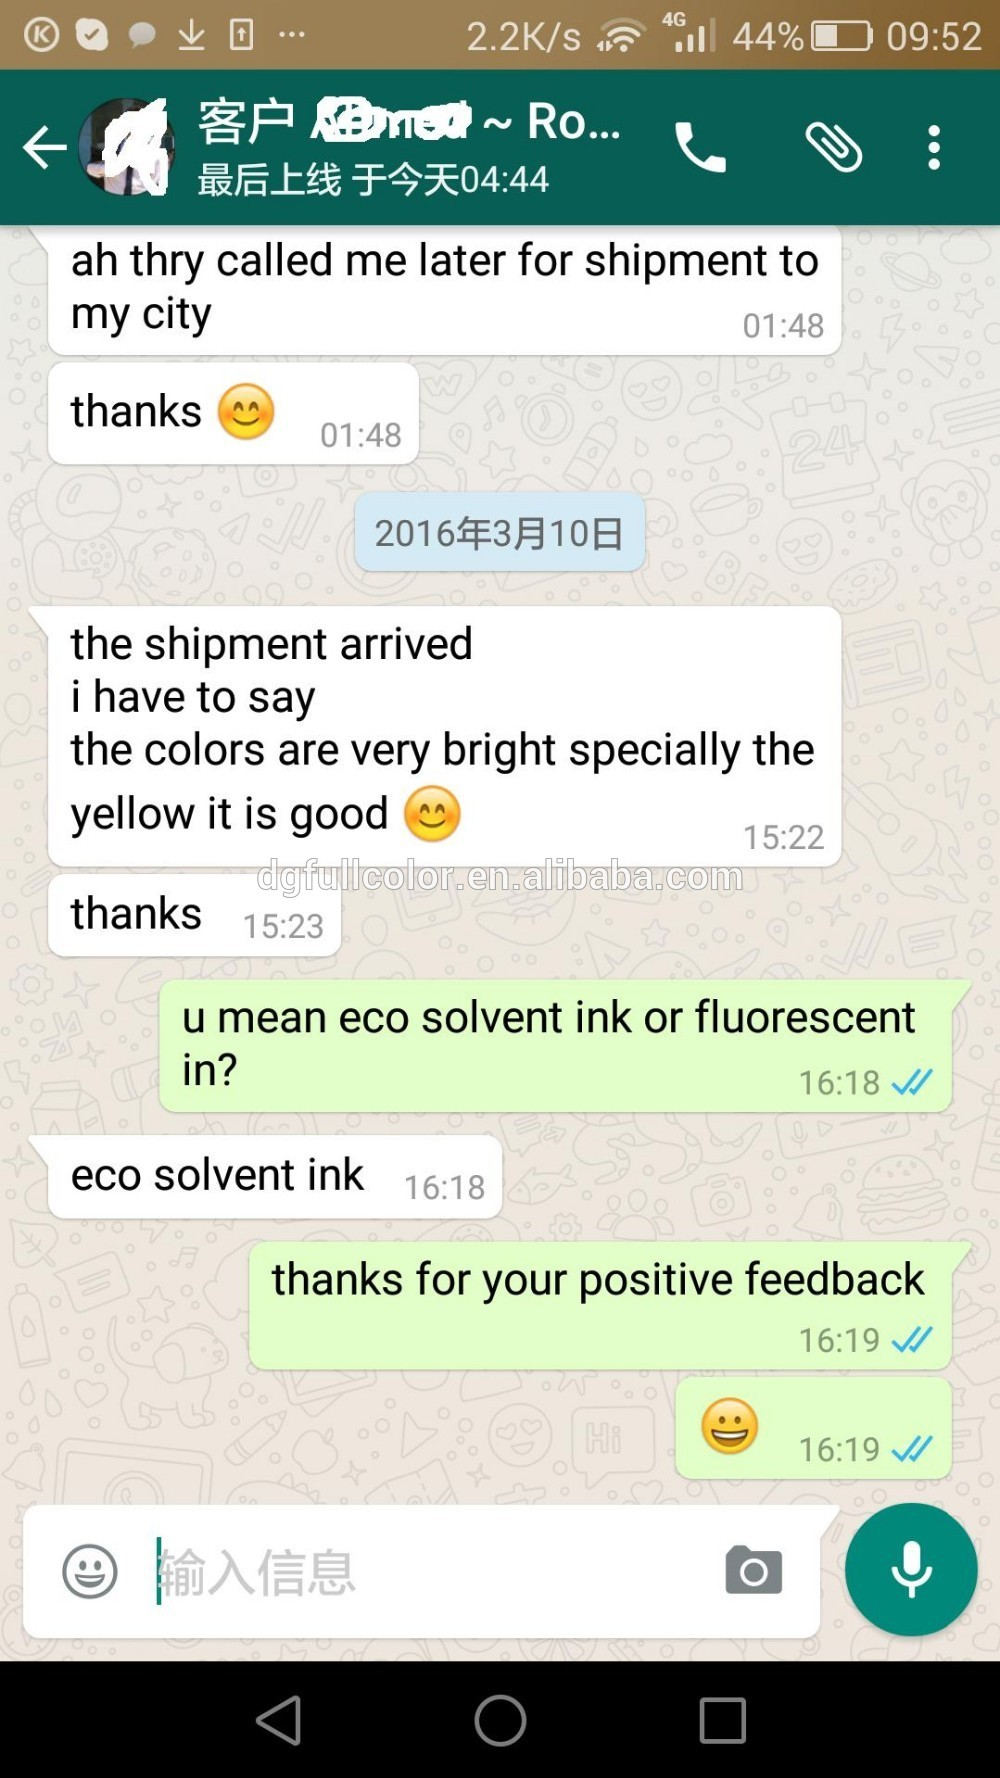 Fadeless Ss21 Eco Solvent Based Printing Ink For Mimaki Jv5 130s Mainan 5d Ligths And Pop Music Bus Toys Civil War Bump N Go 368b 2 160s 320s Printer Us270